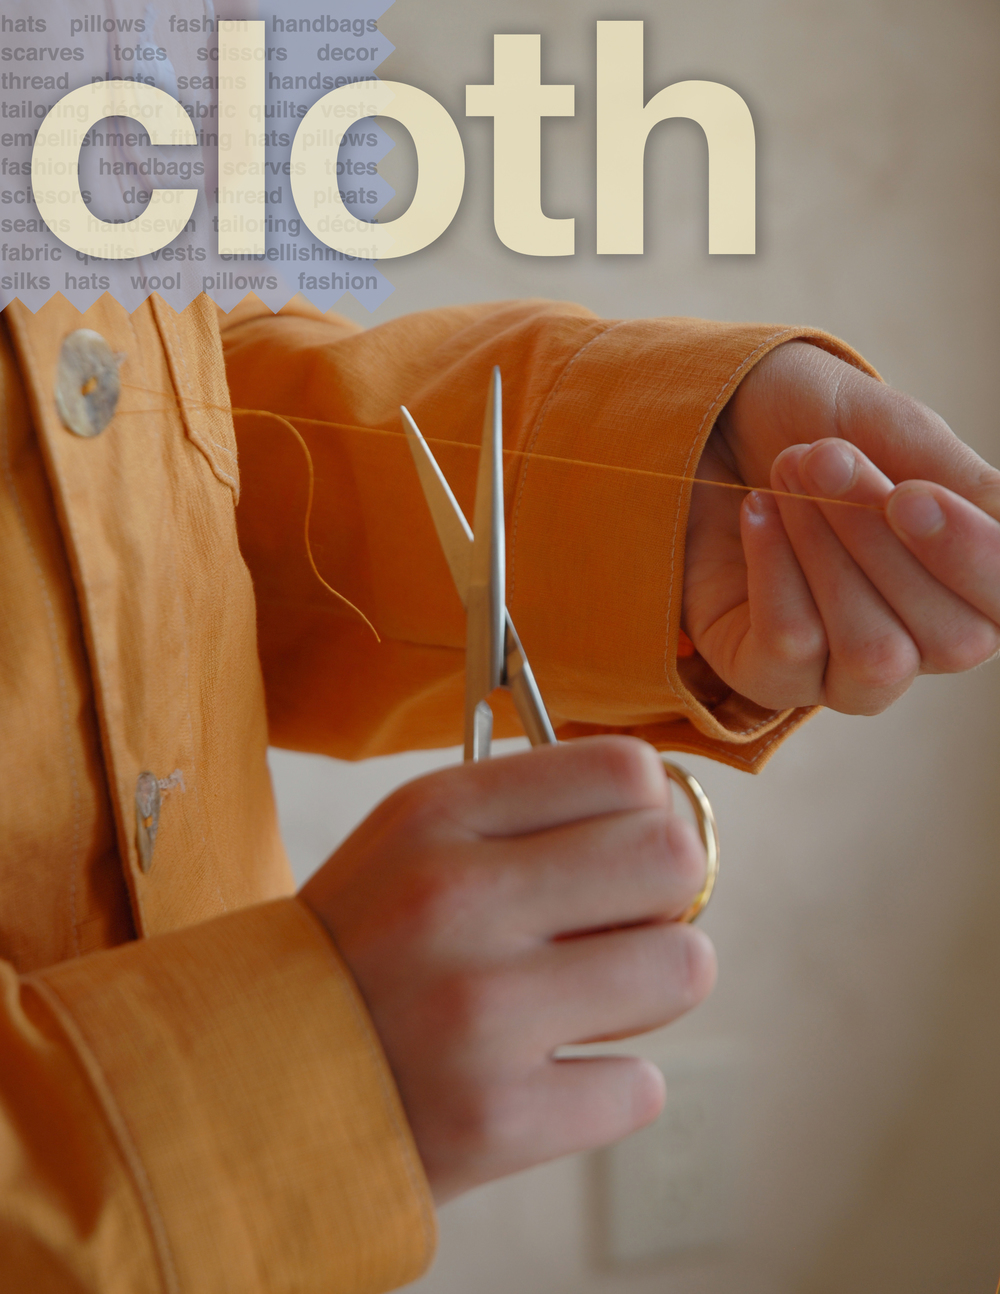 cloth cover cut thread.jpg